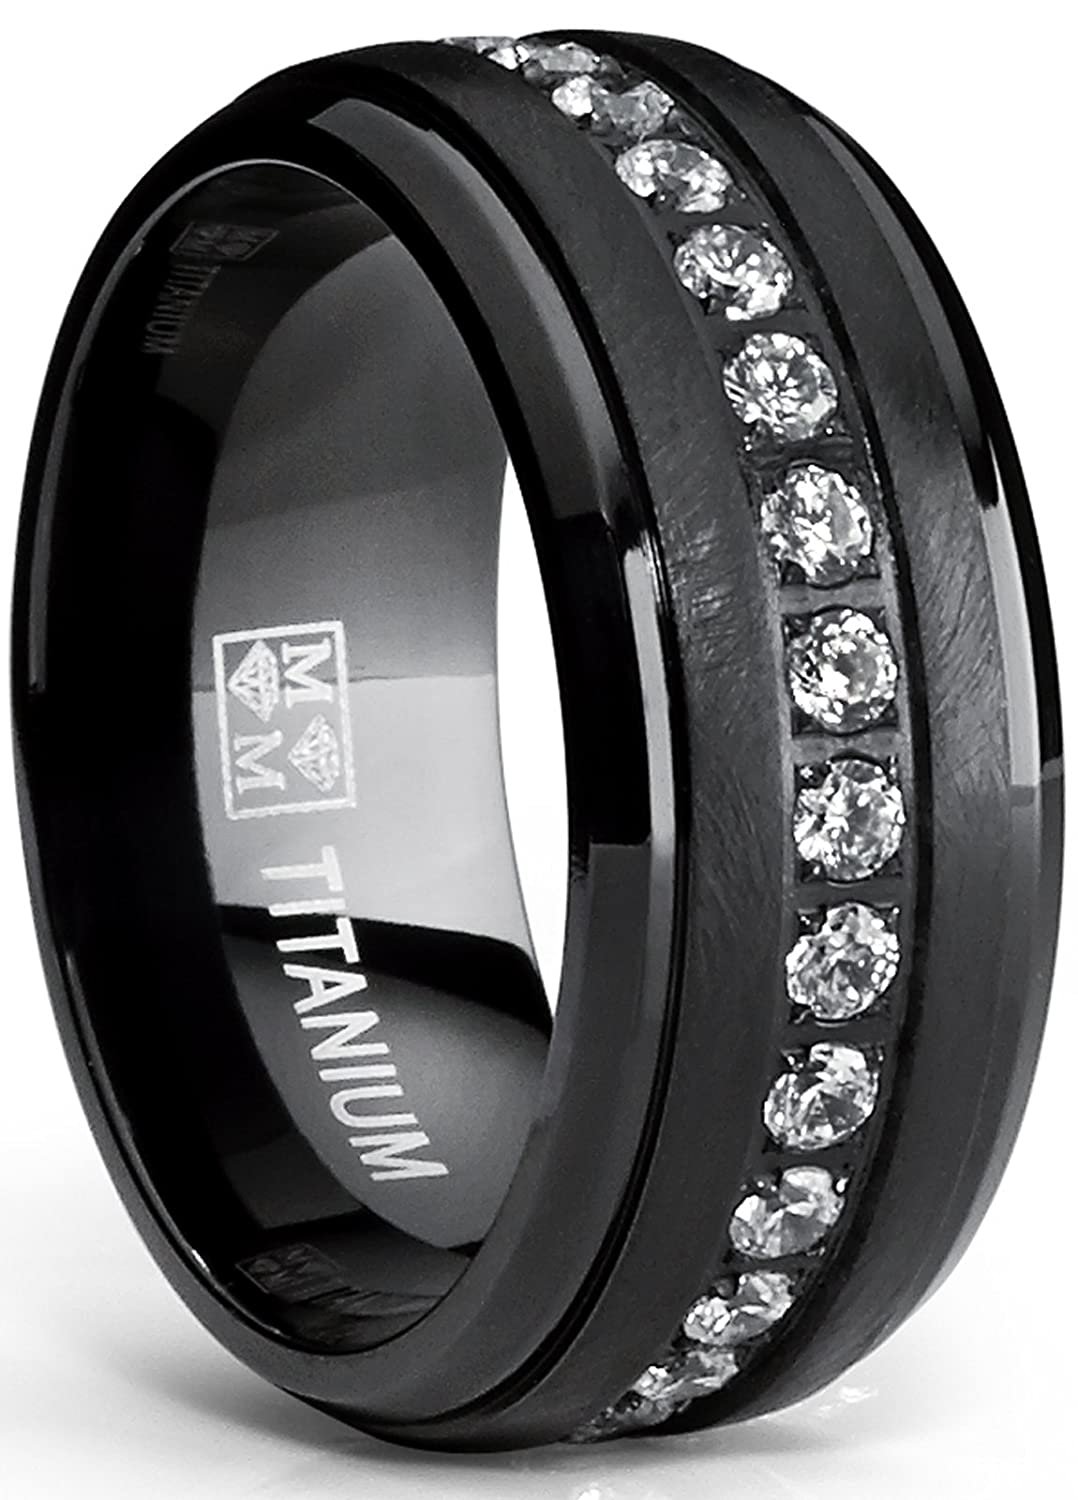 Black Titanium Men's Eternity Wedding Band Ring with Clear Round Cubic Zirconia 9mm TIR-1204